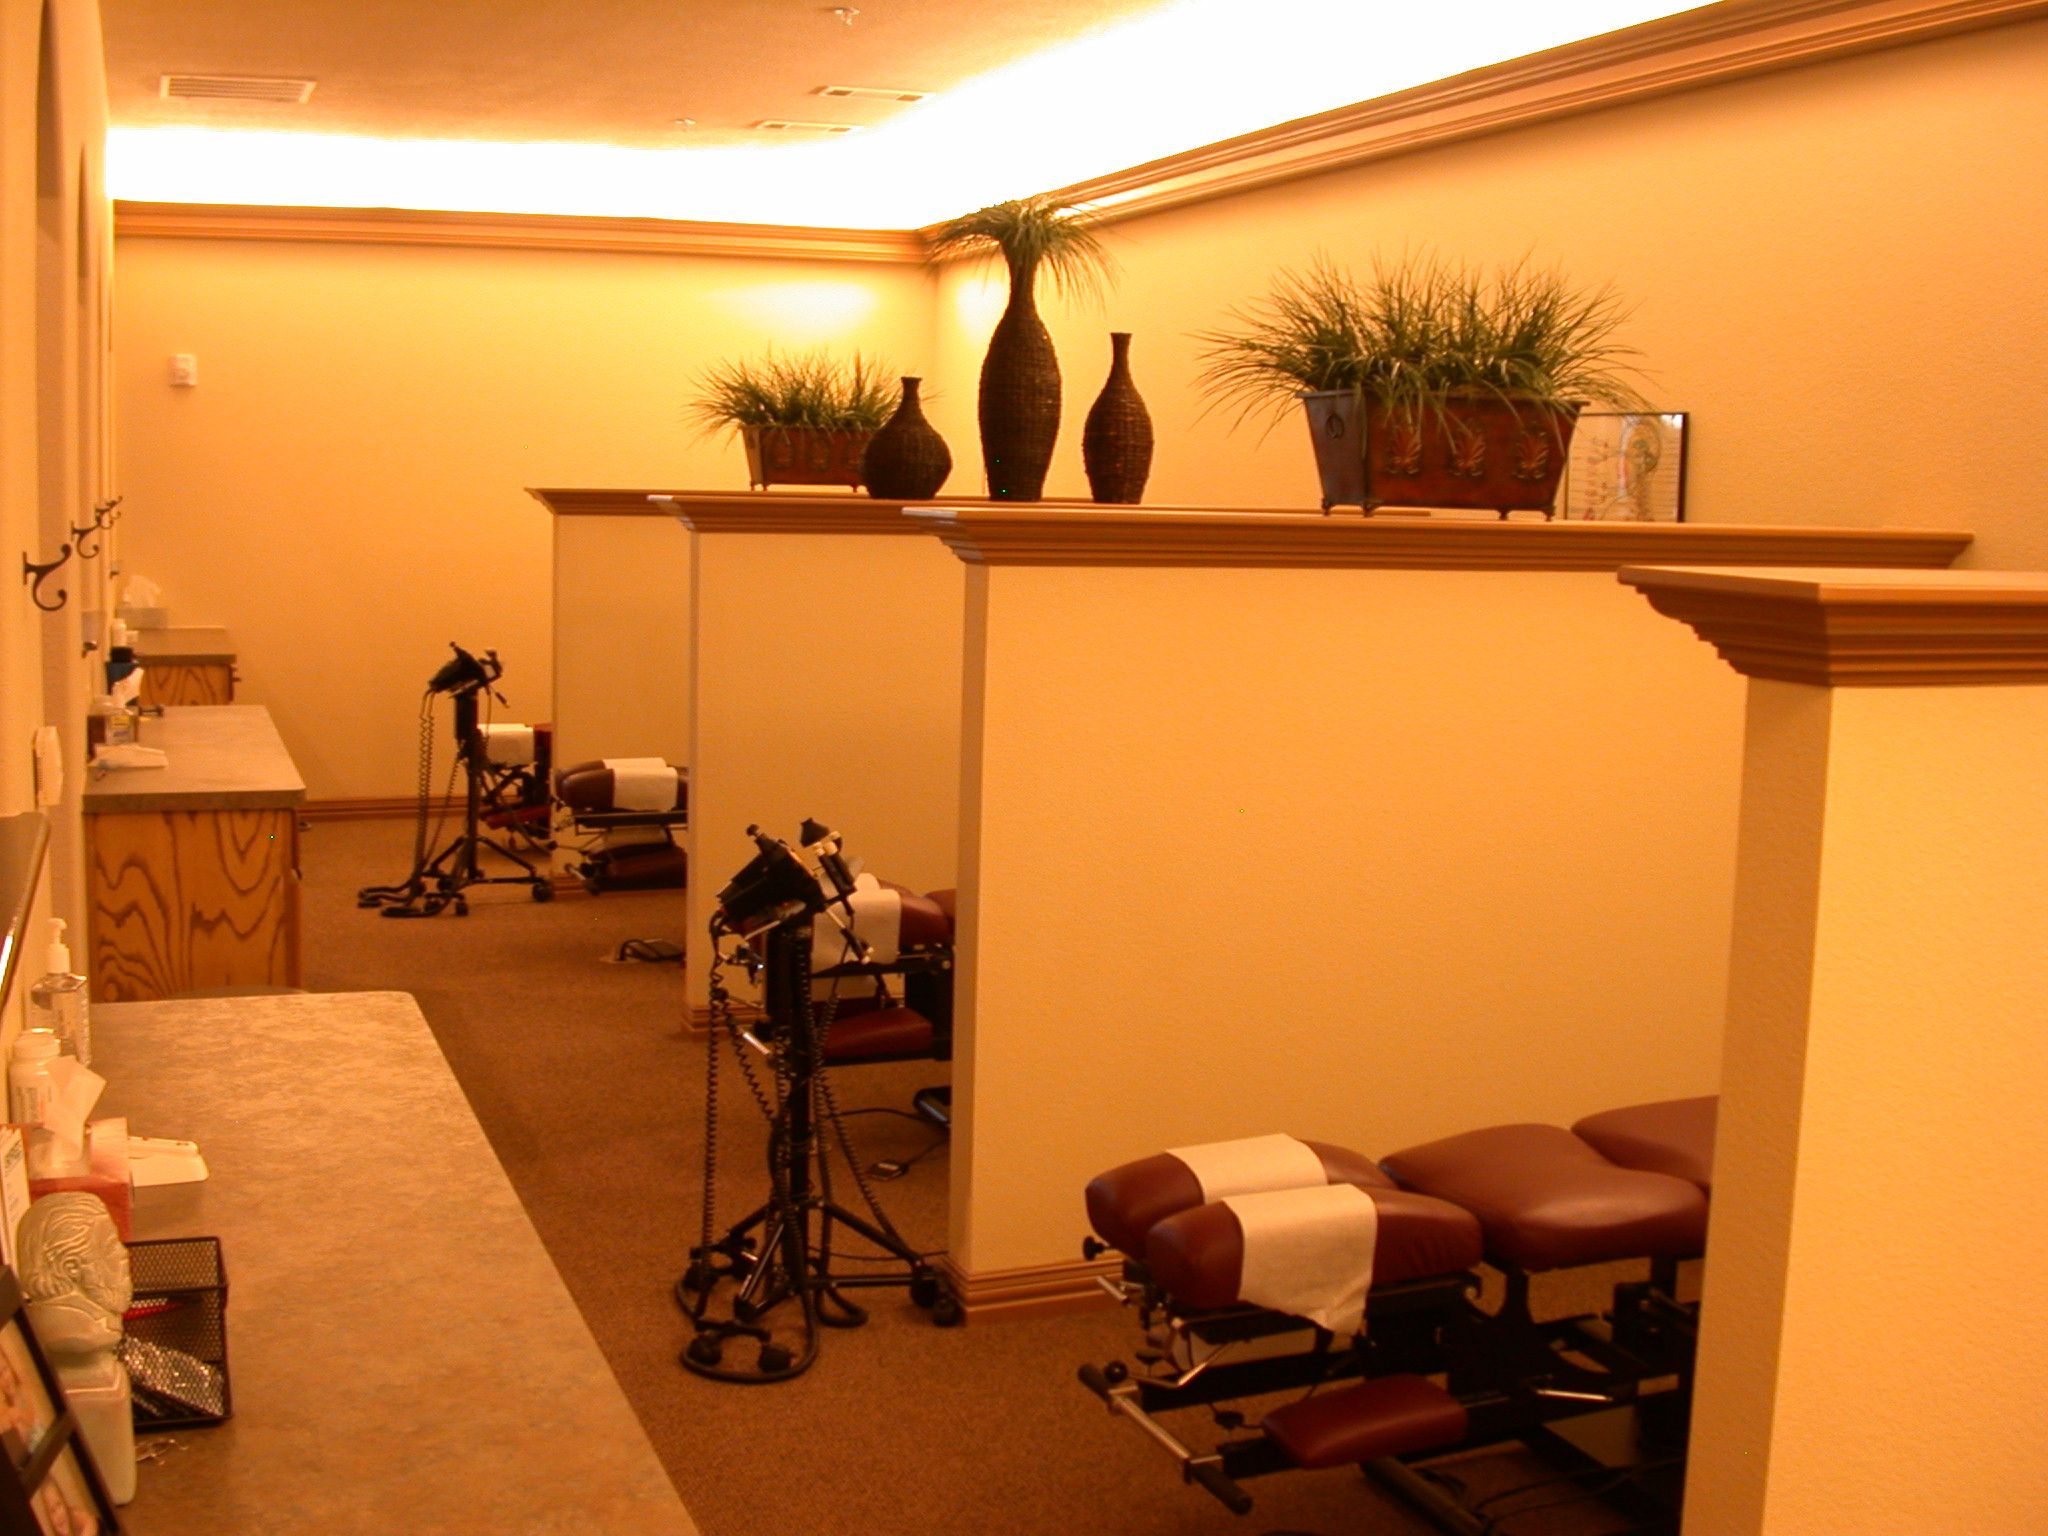 Open-Adjusting-Area.jpg (2048×1536) | Physical Therapy Office Design ...